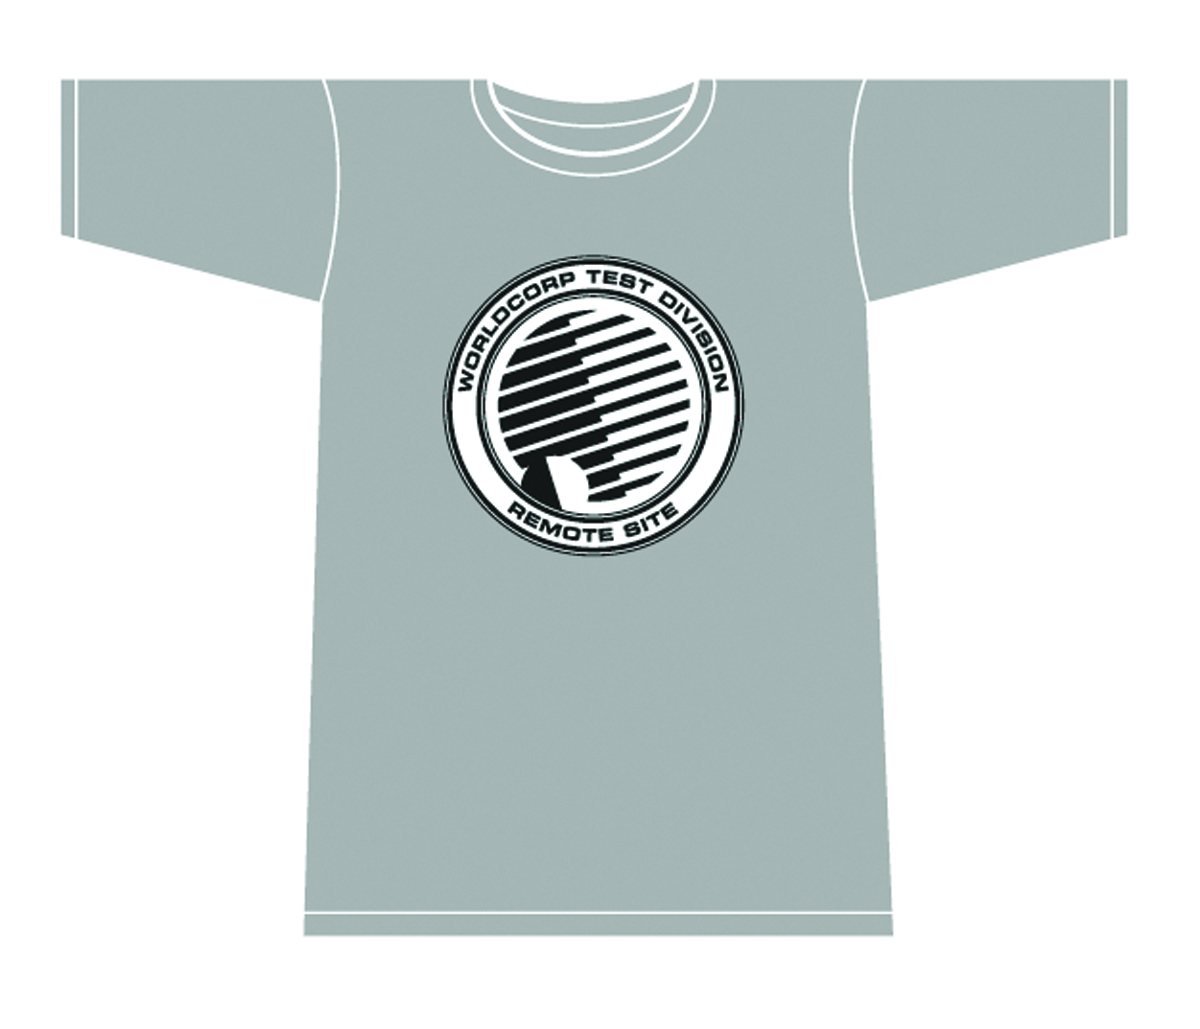 NOWHERE MEN WORLD CORP TEST DIVISION T/S GREY MENS LG